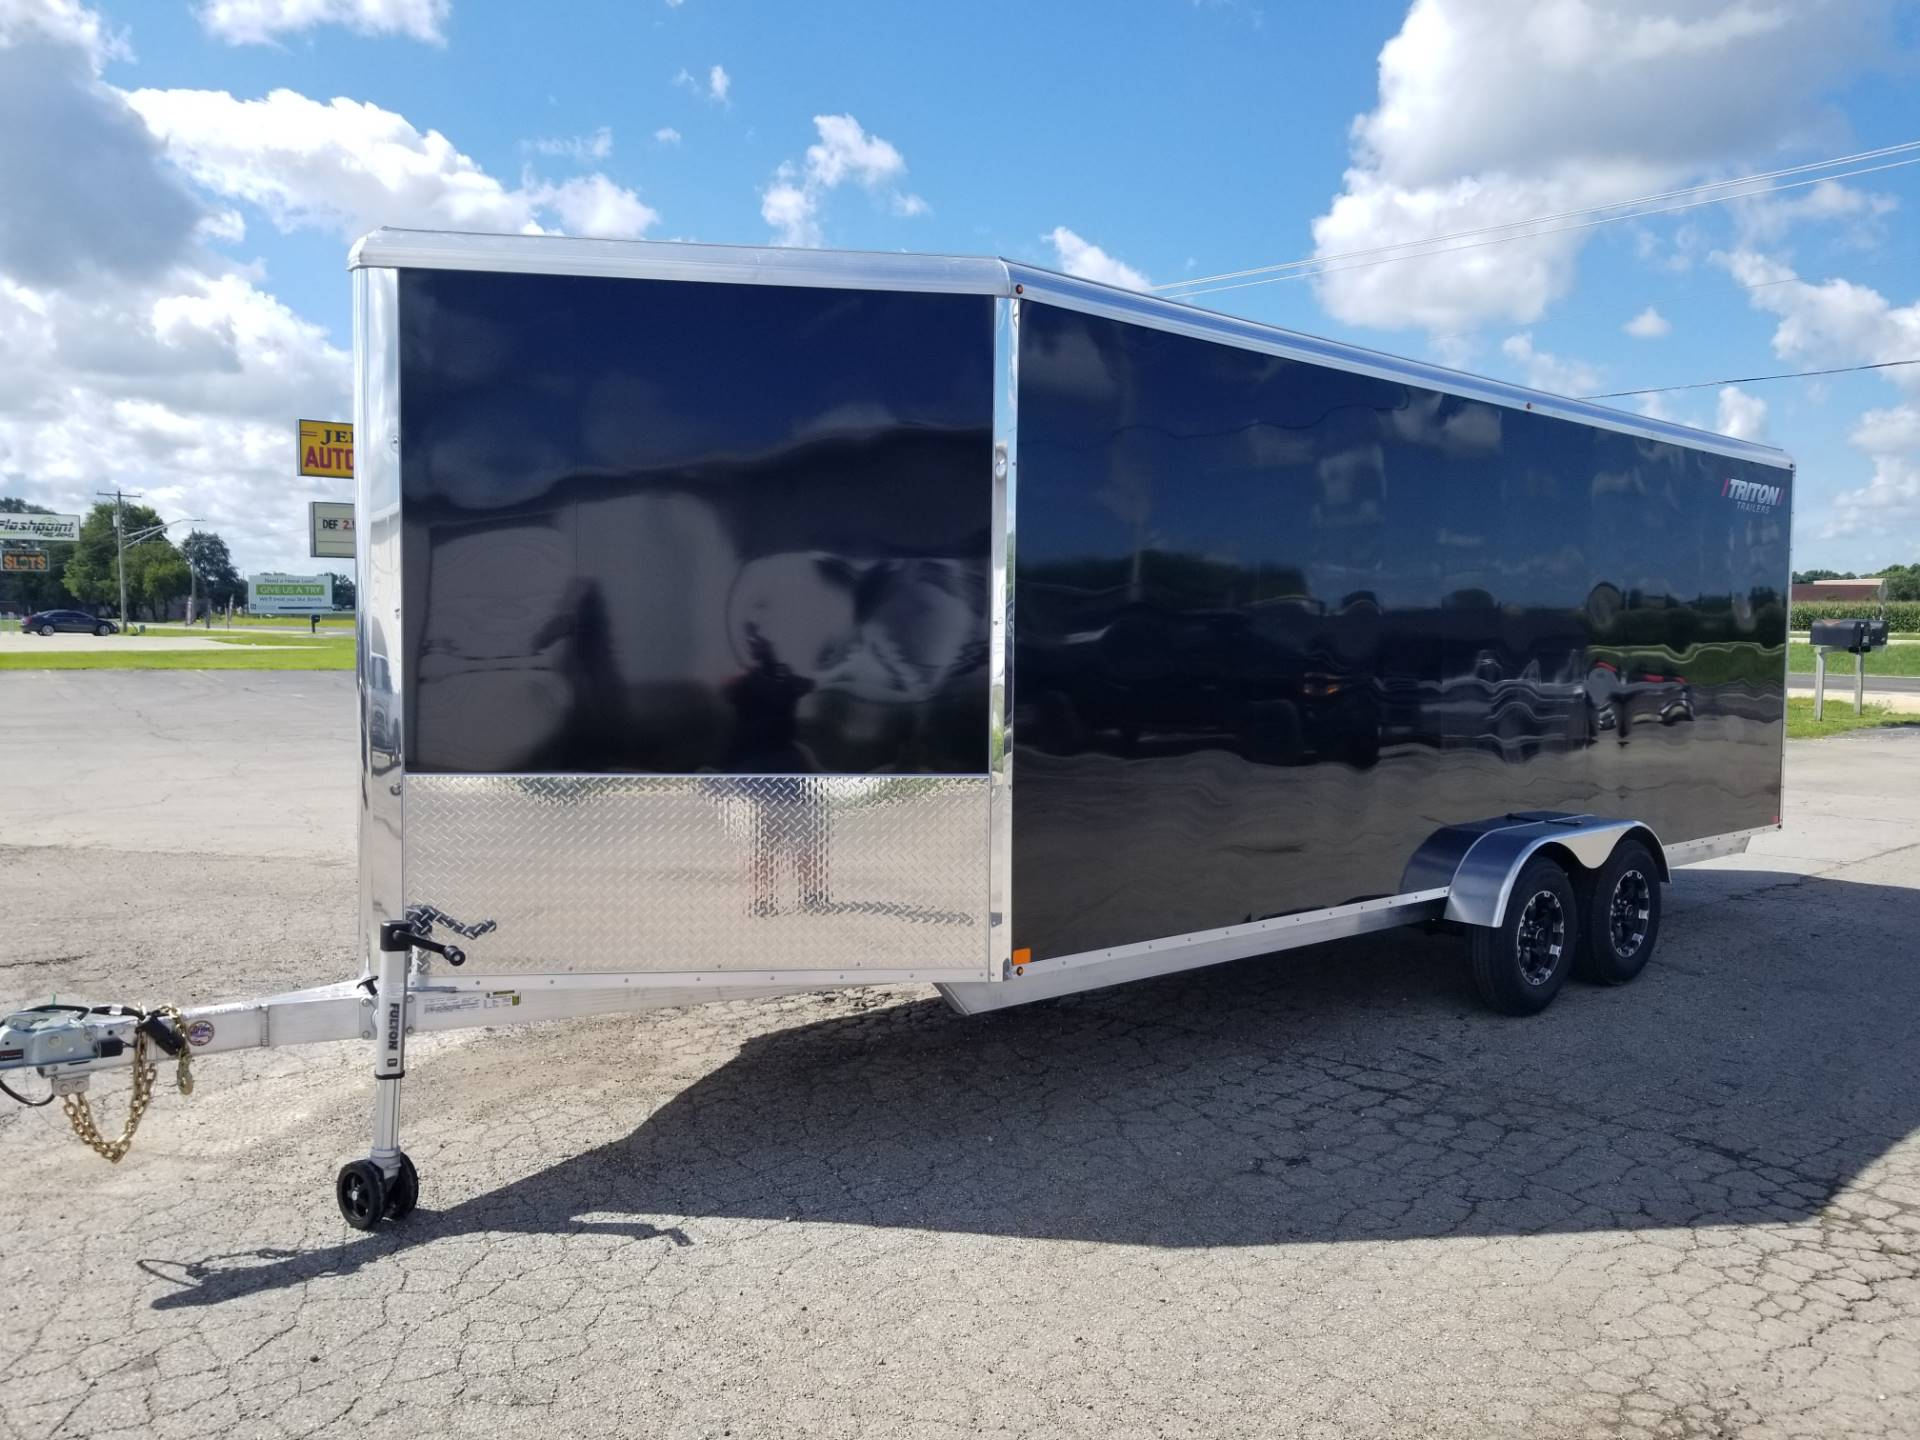 2020 Triton Trailers 2020 TRITON PR207-6-6EB2 in Roscoe, Illinois - Photo 1